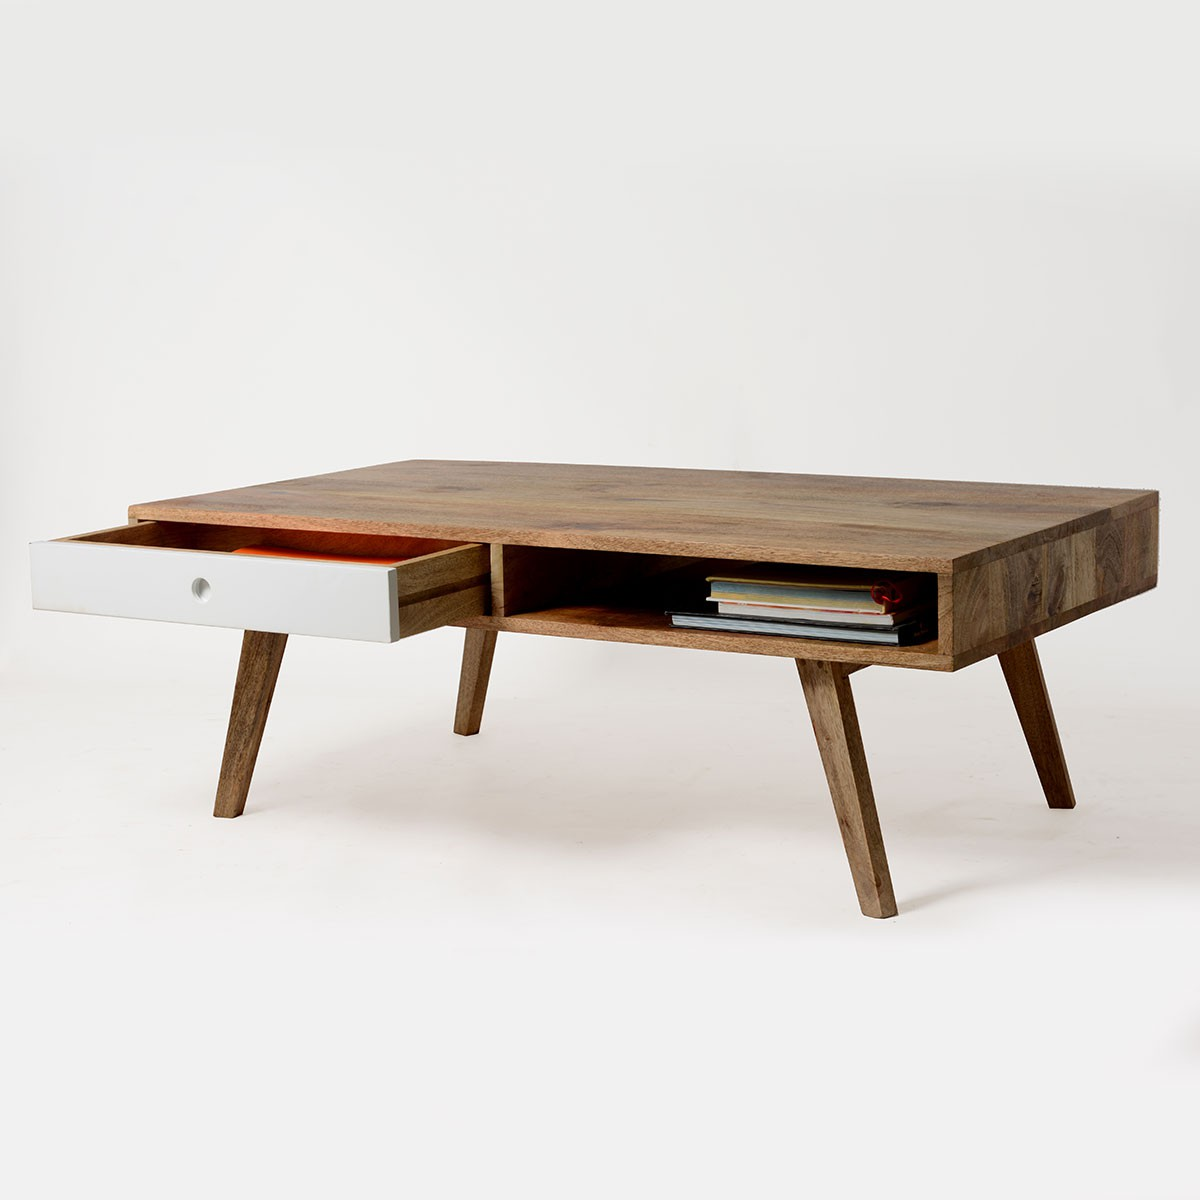 Table basse bois massif scandinave